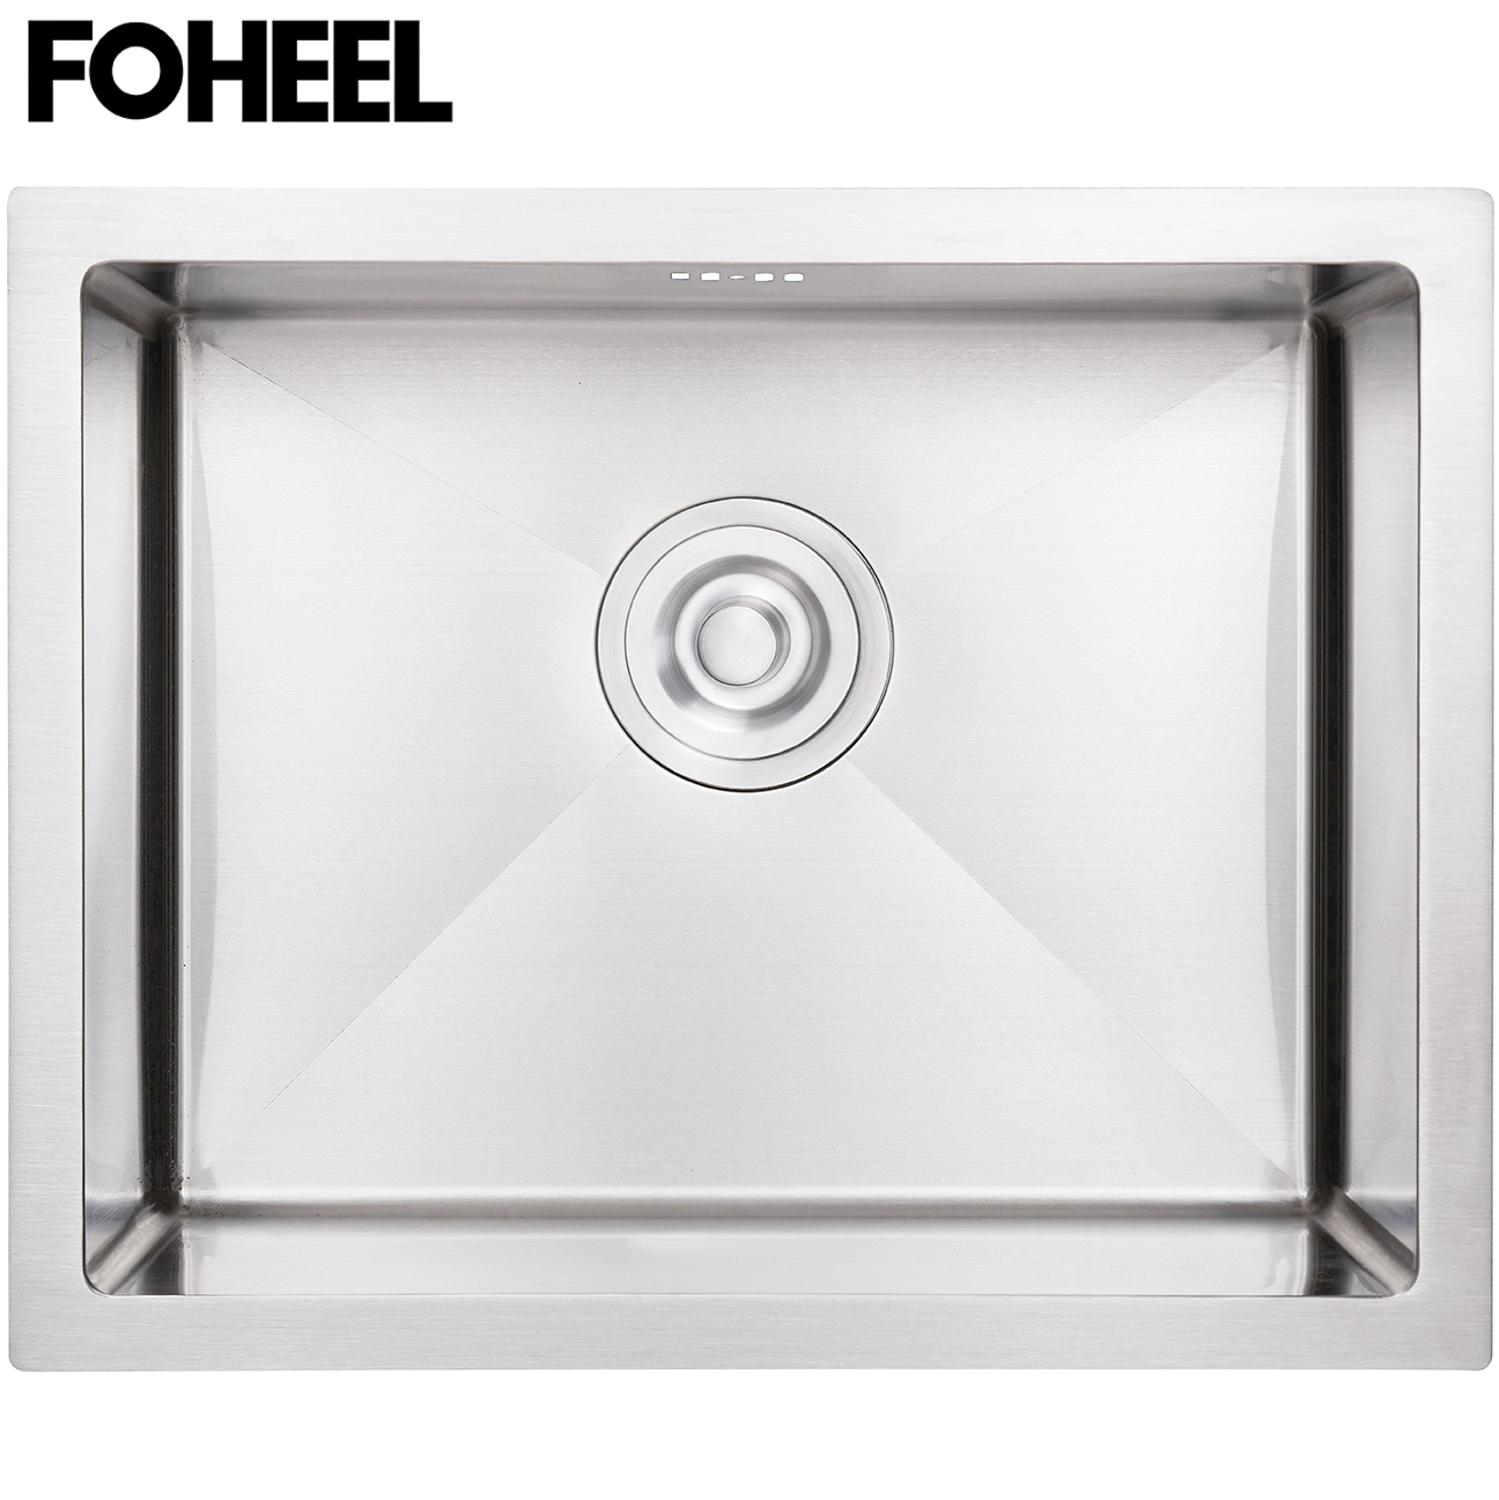 FOHEEL Kitchen Sink Drain Basket And Drain Pip Rectangular Stainless Steel Kitchen Sink Slot Dish Basin